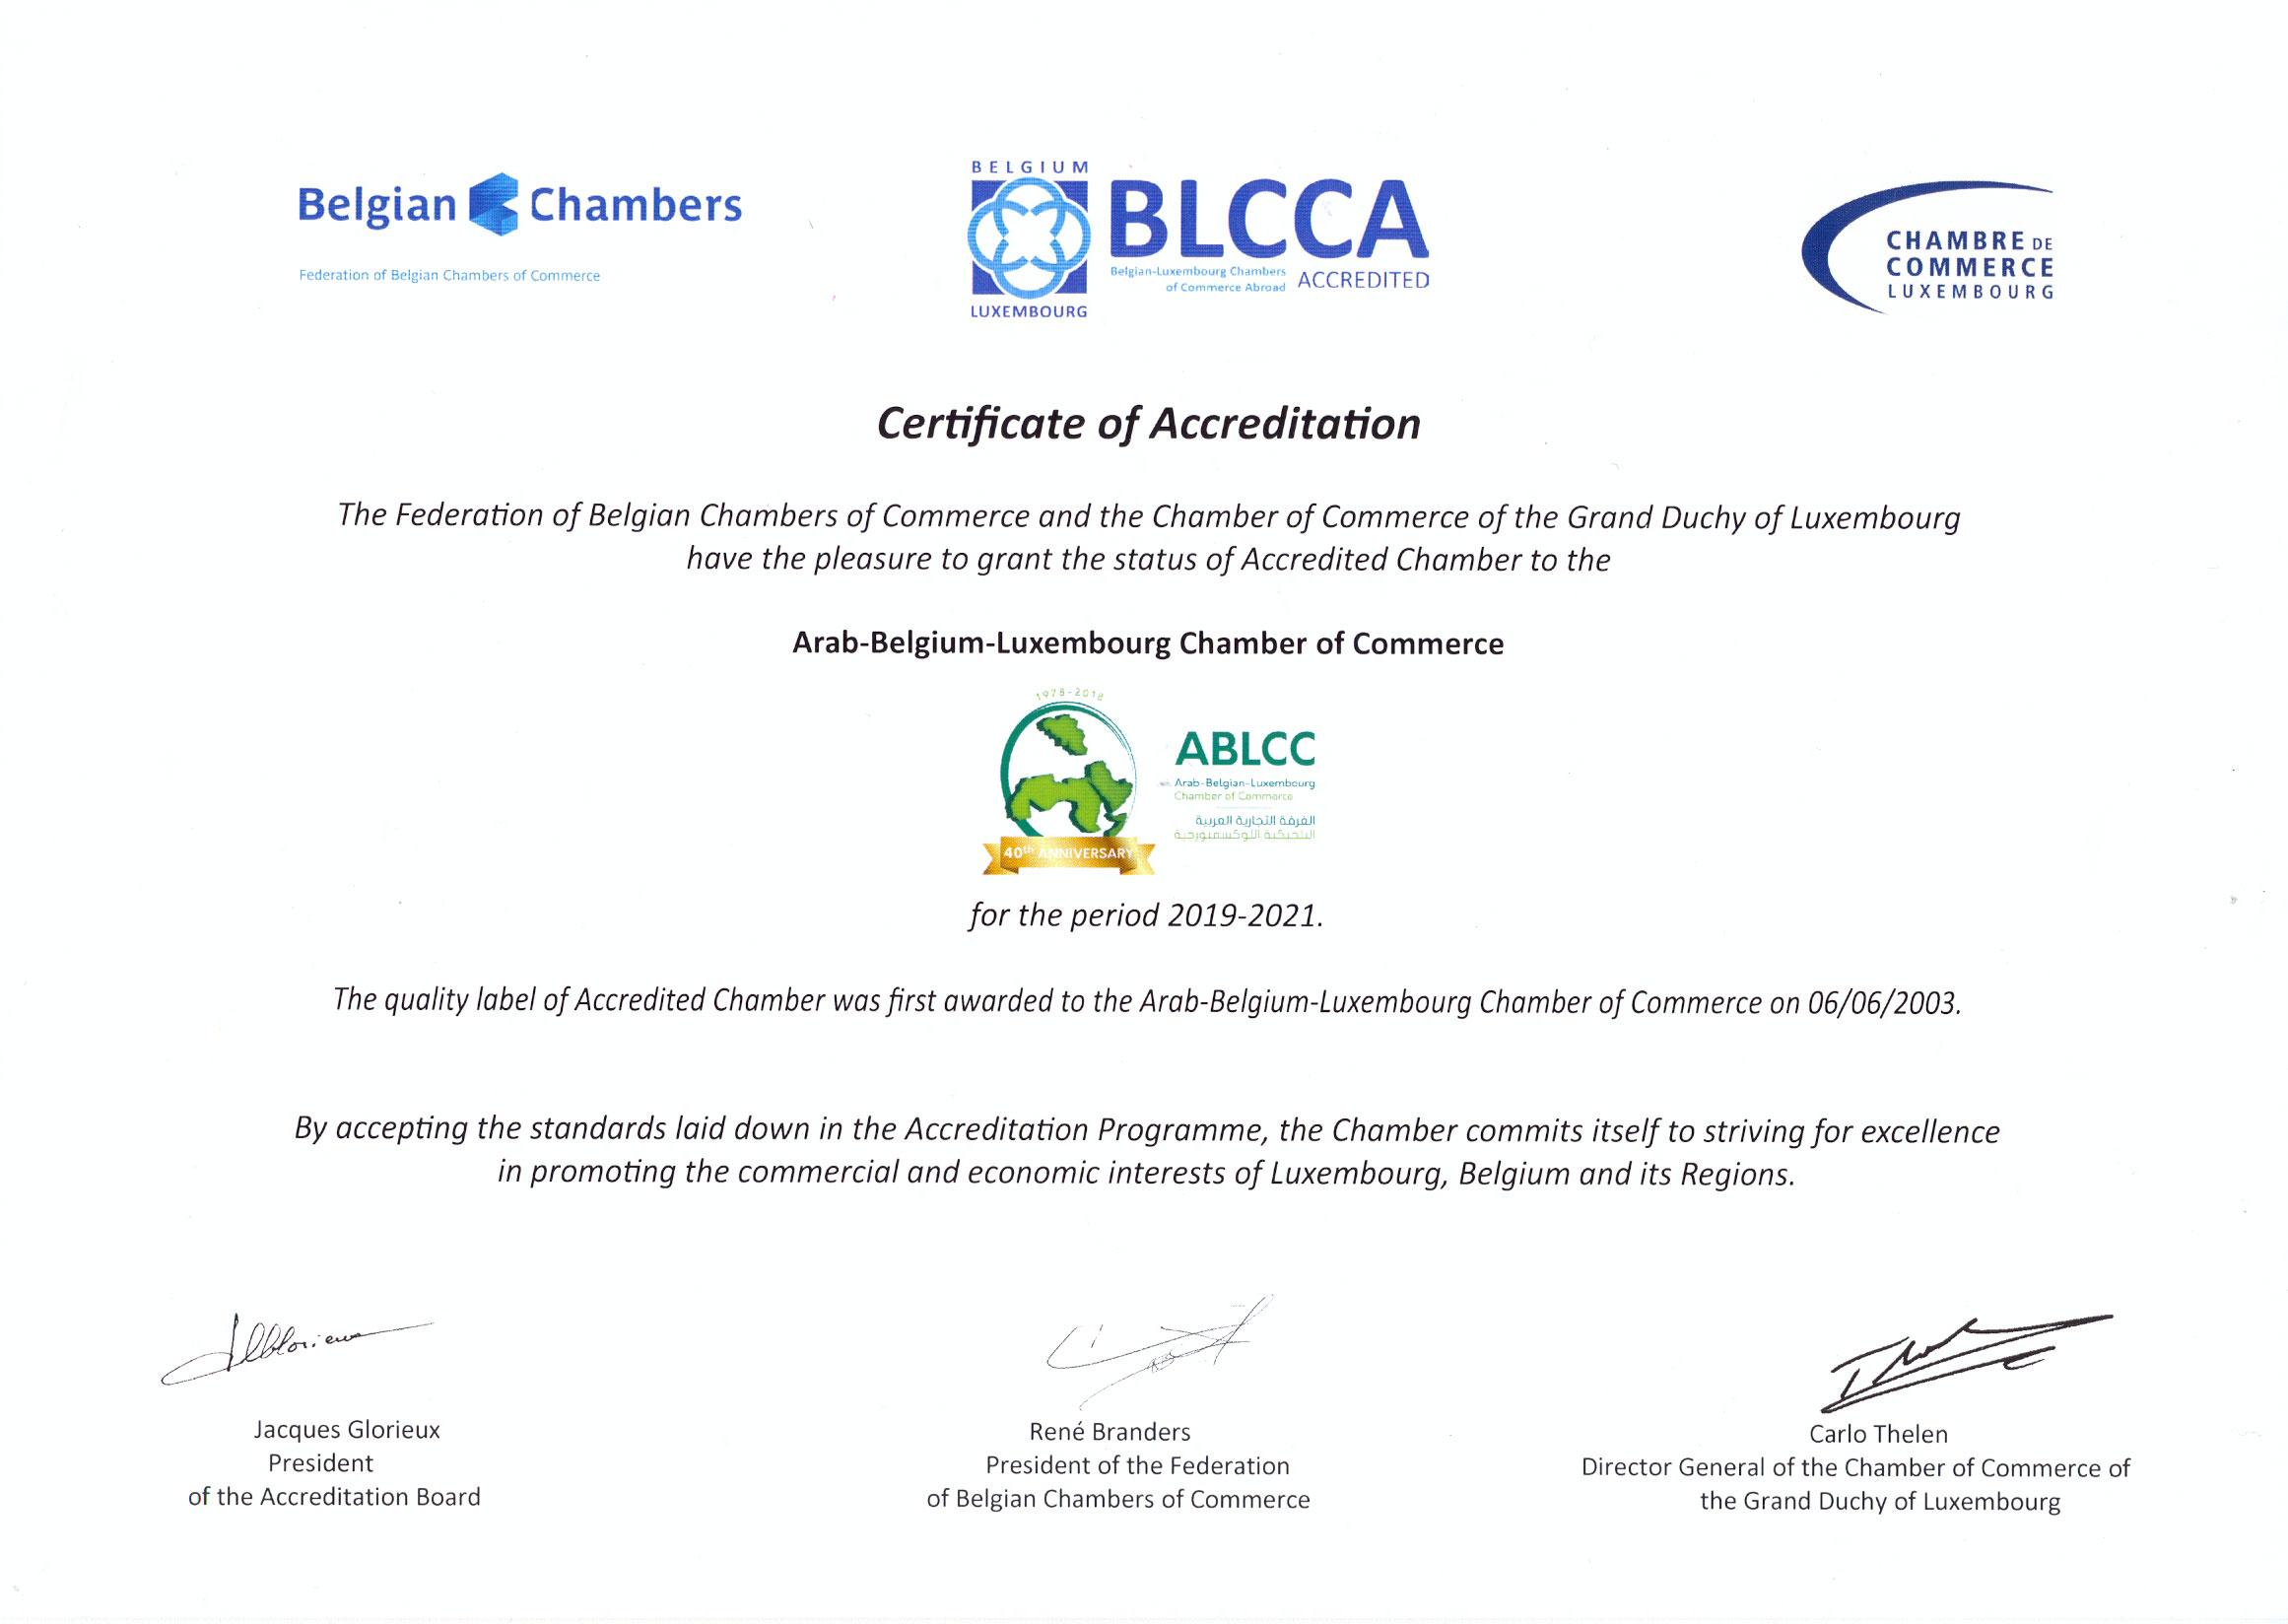 accreditation-ablcc-2019-2021.jpg